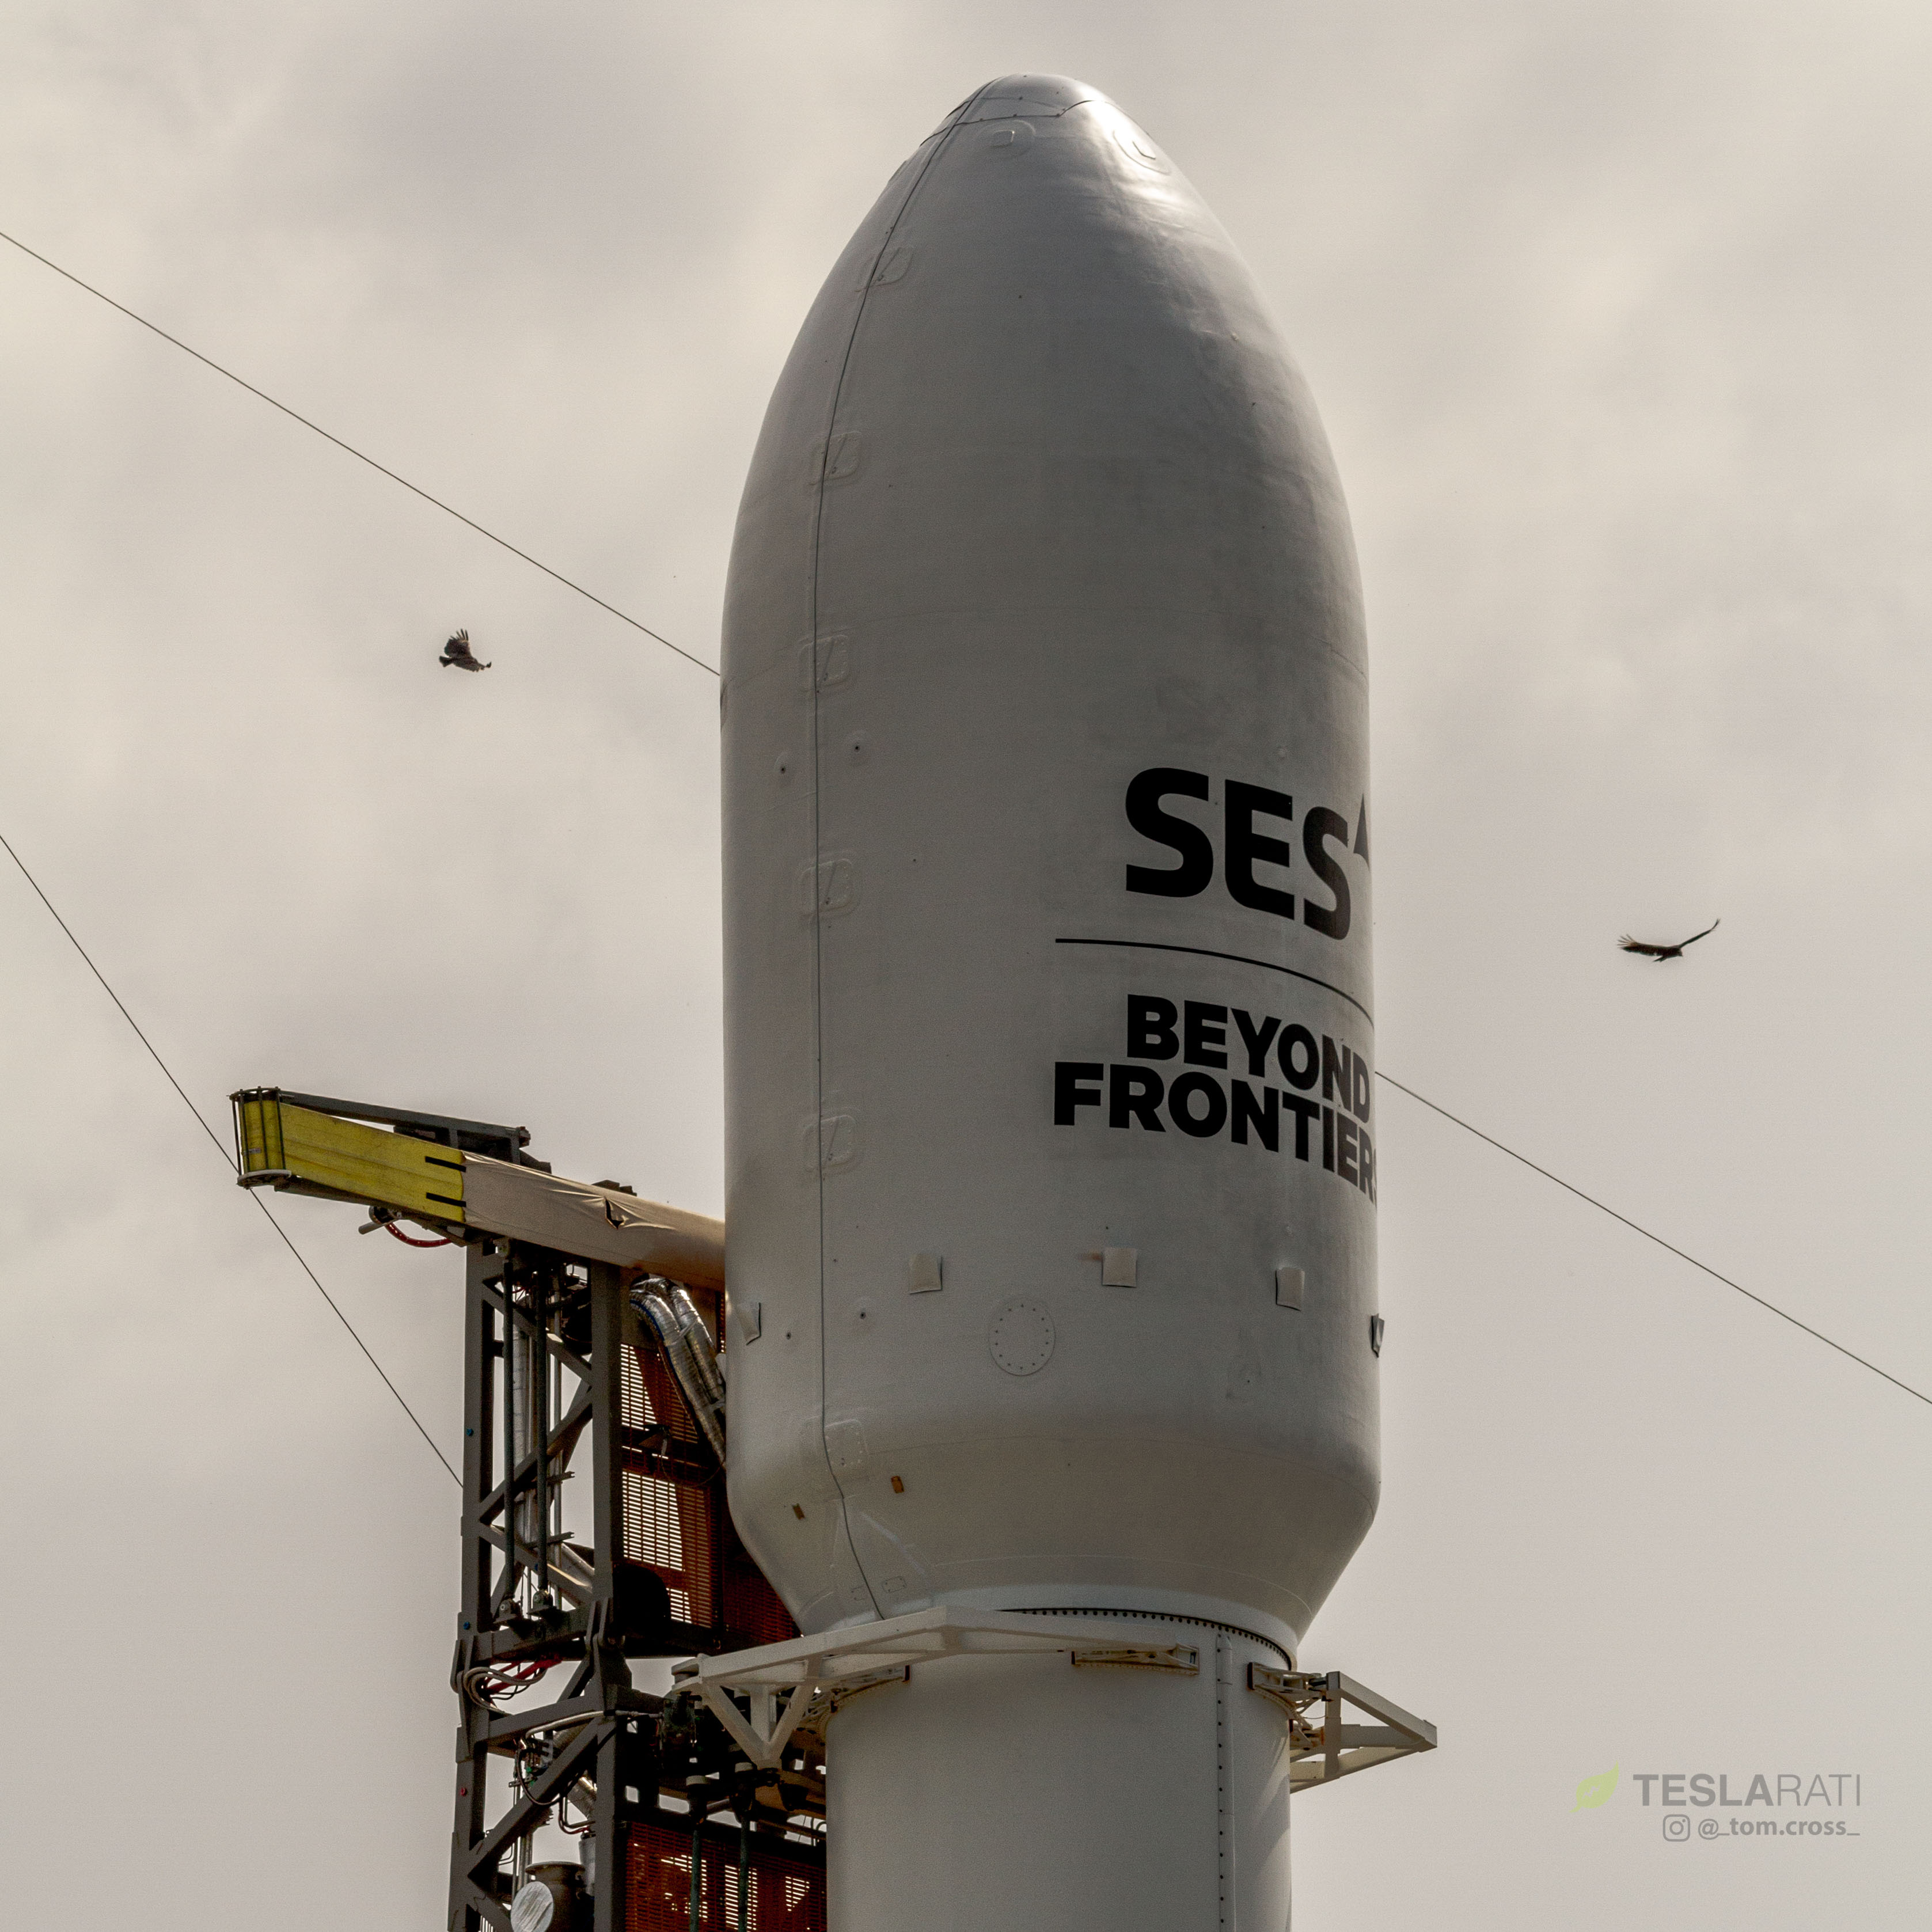 SES-12 fairing prelaunch (Tom Cross)